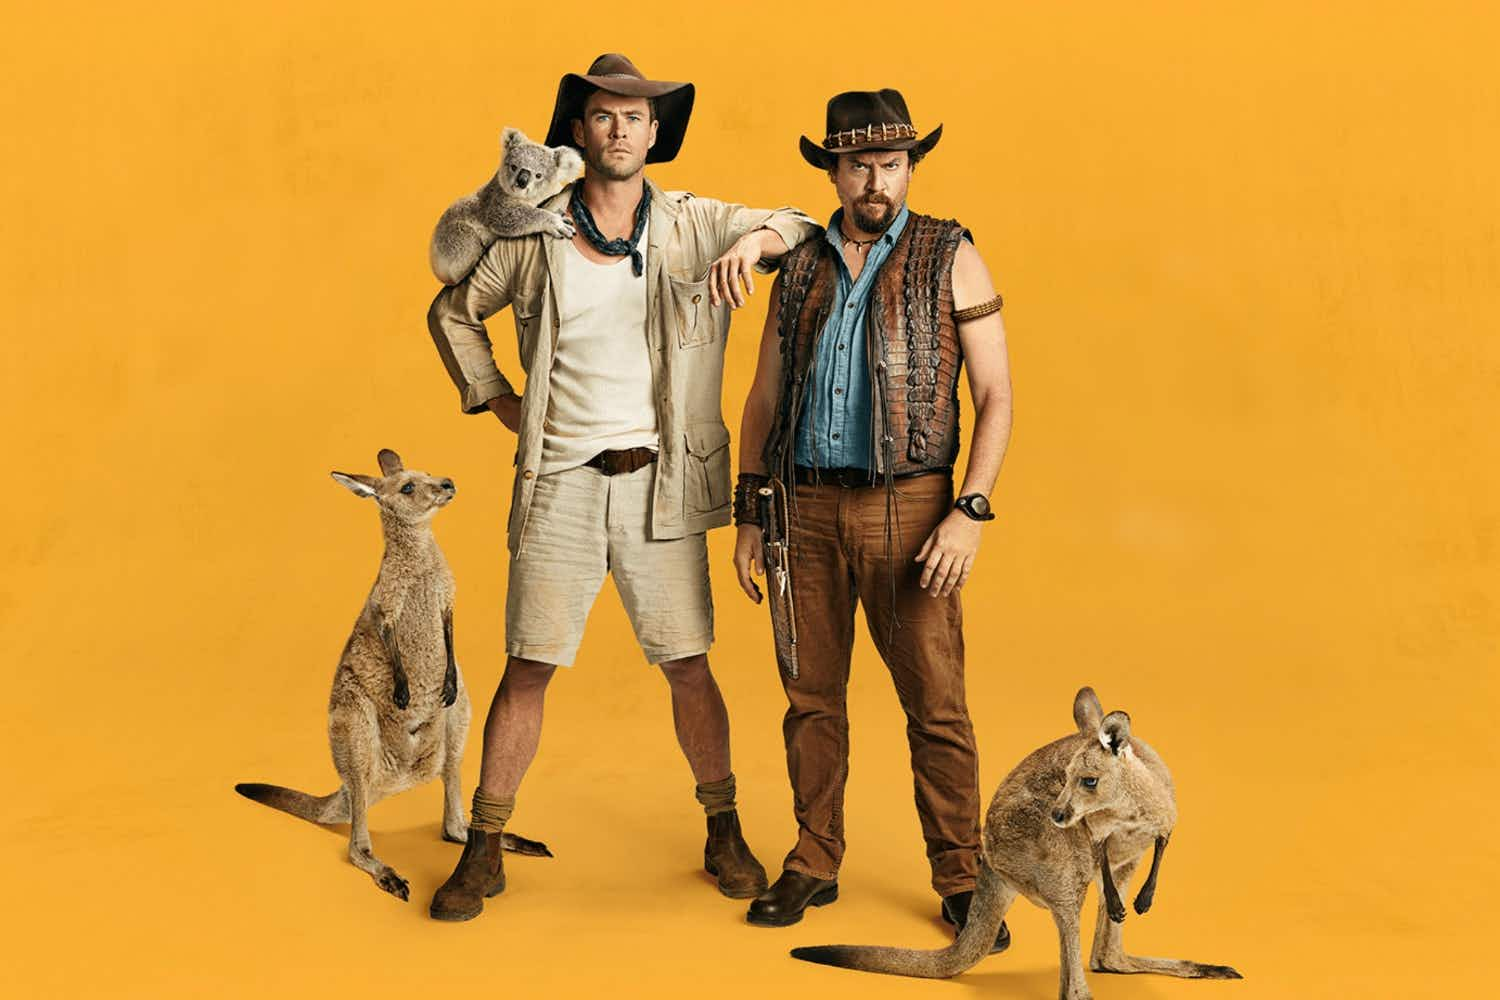 Are the trailers for a new Crocodile Dundee movie a marketing stunt for Tourism Australia?